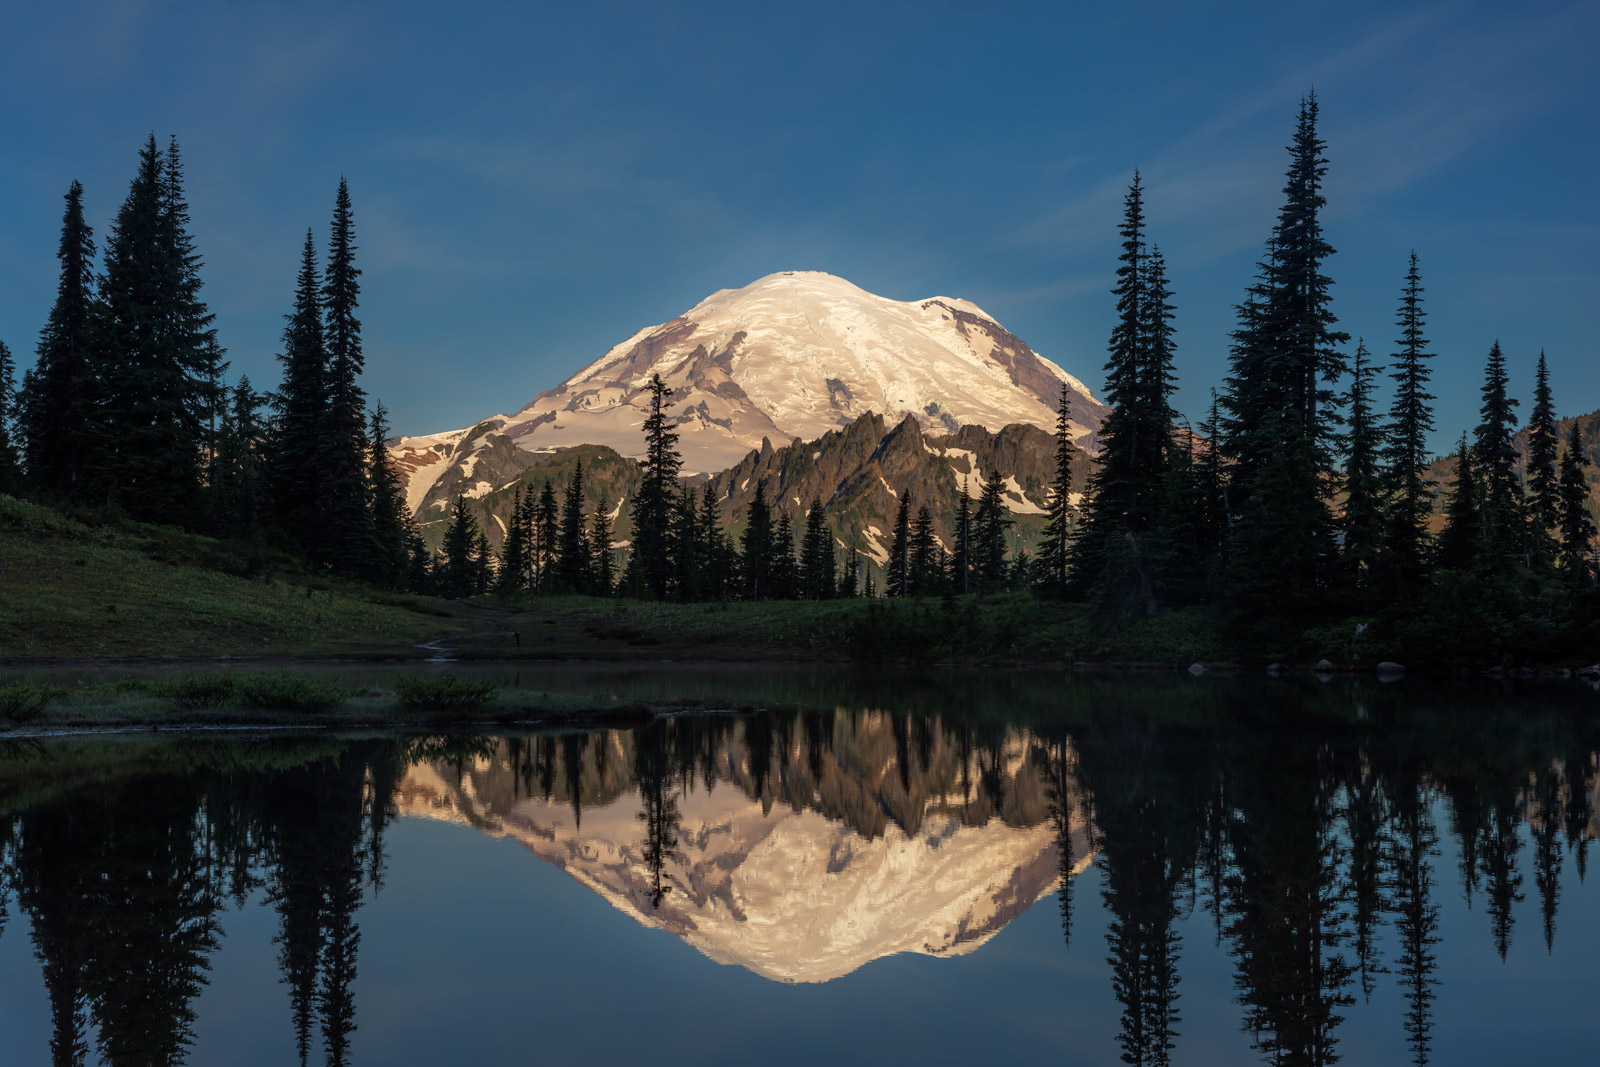 Washington, Mount Rainier, Mountain, Reflection, Tipsoo Lake